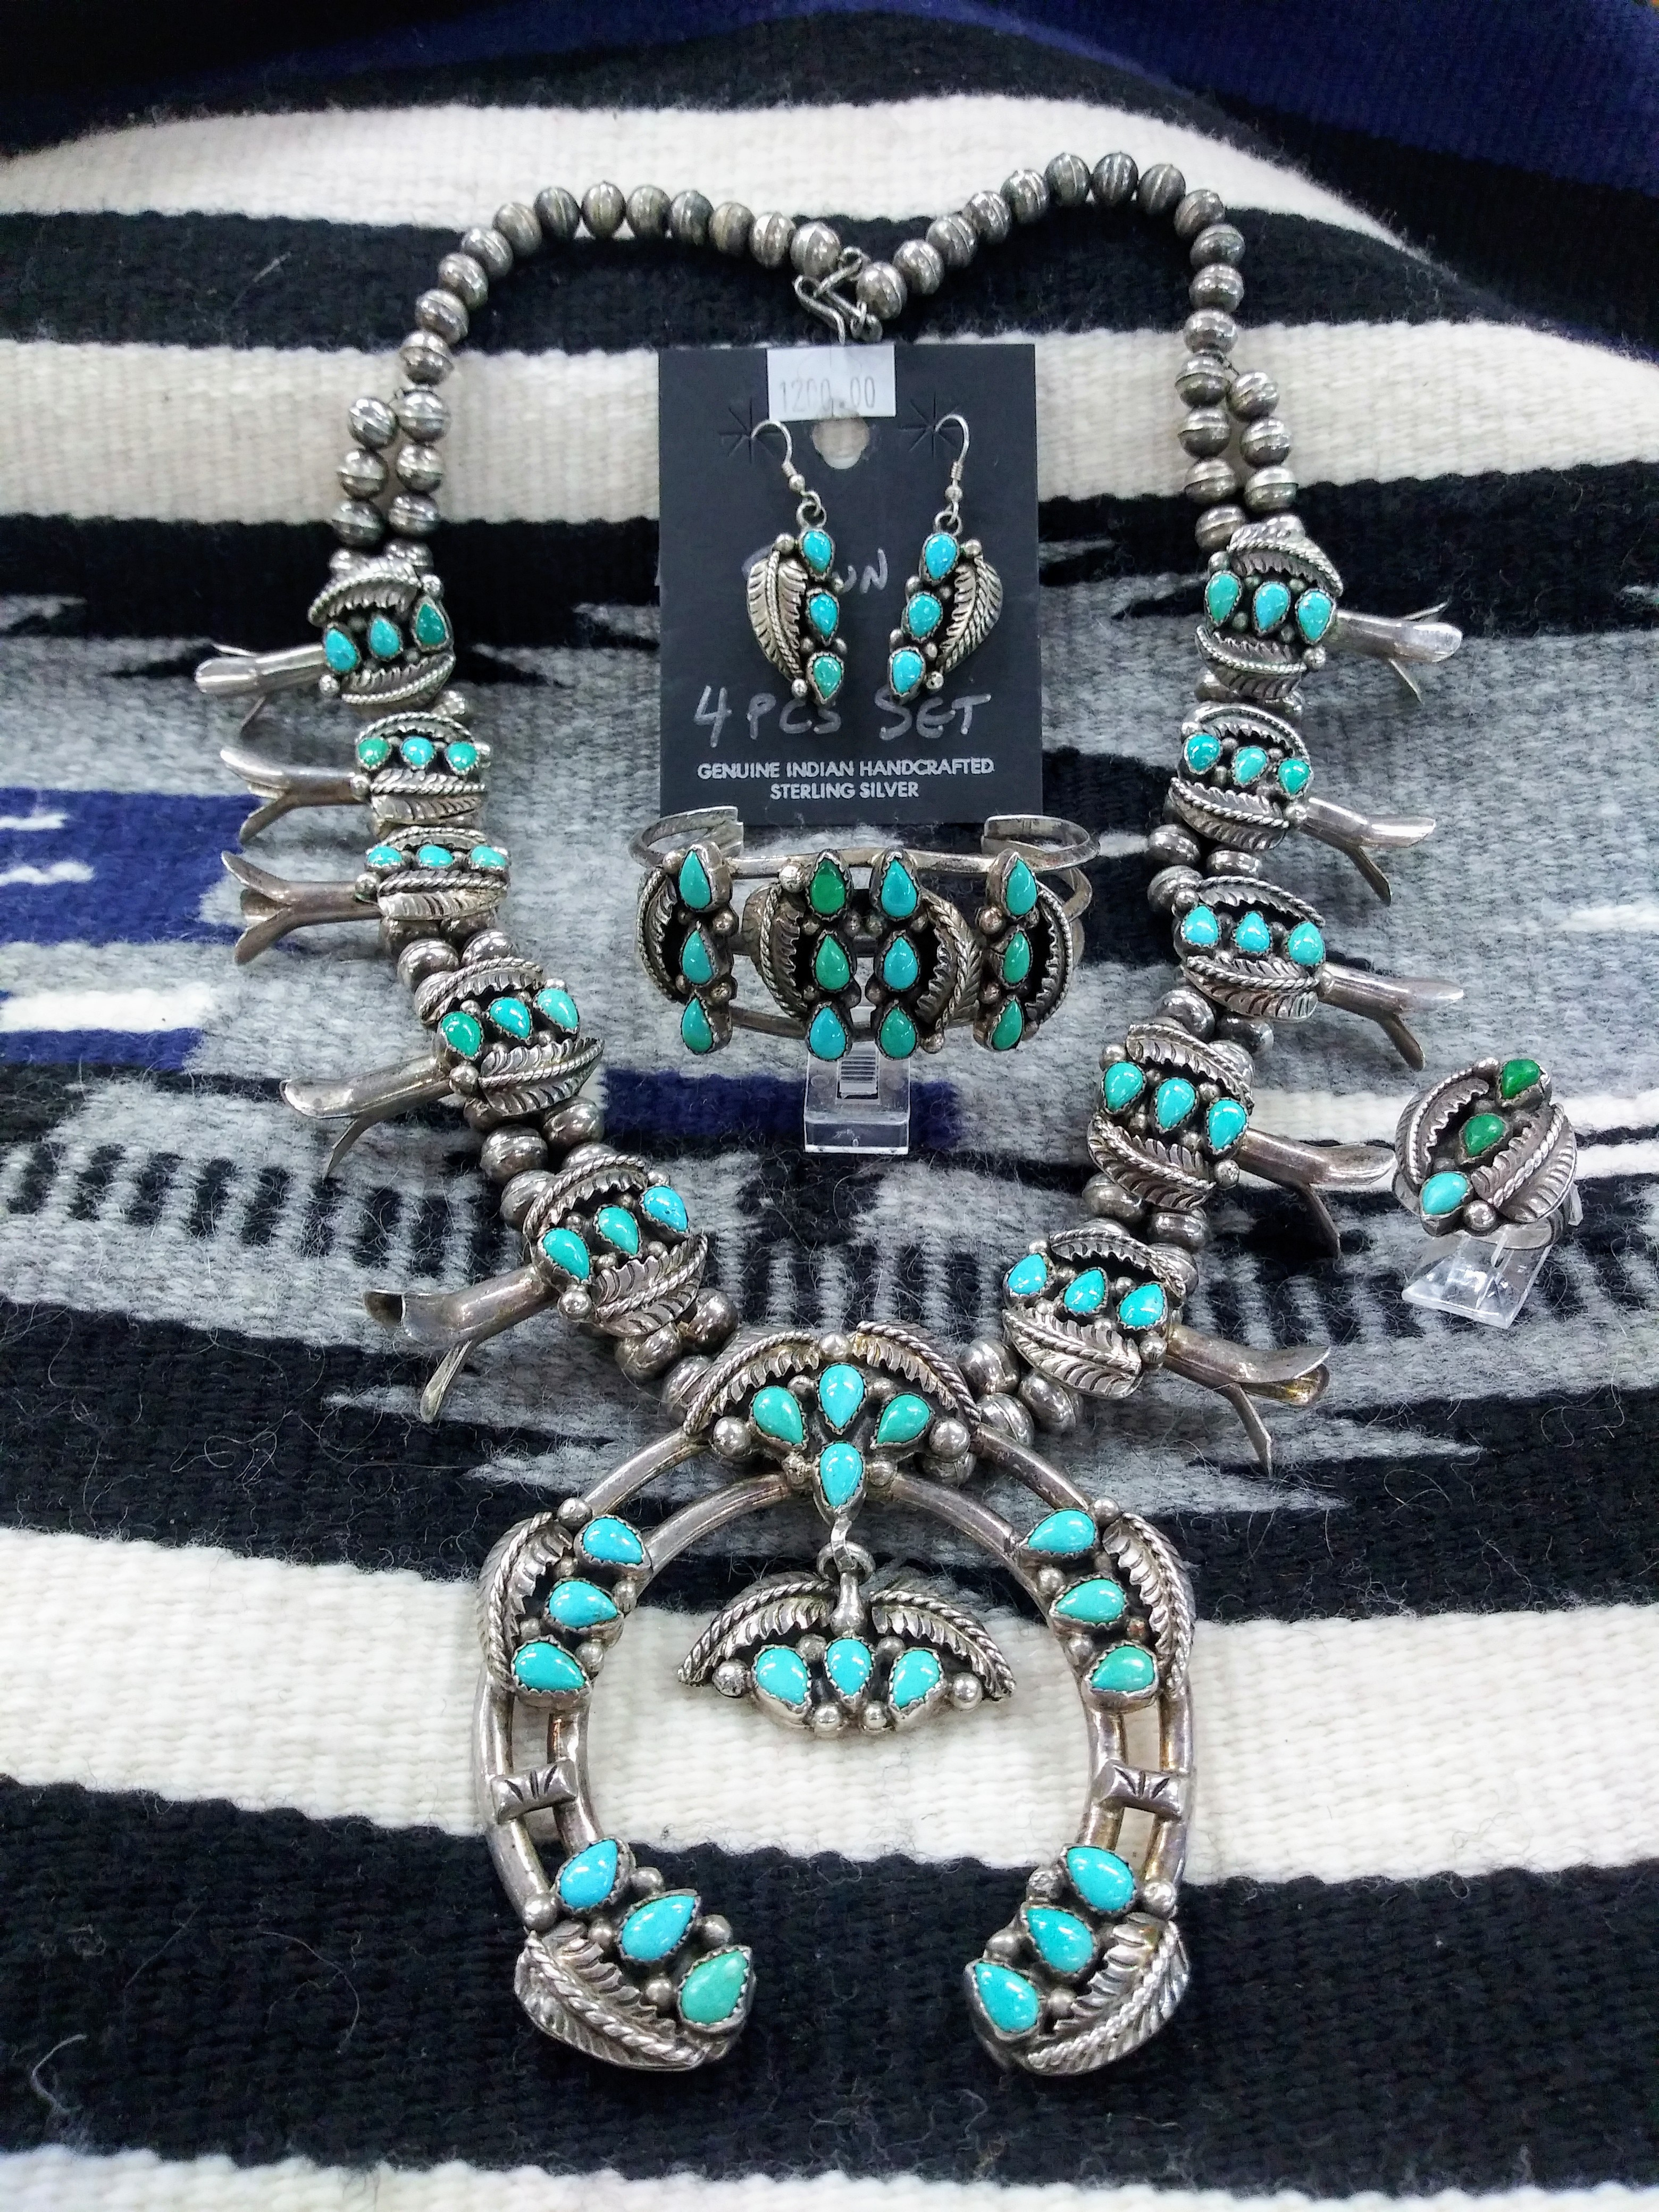 SBN1- Pawn Squash Blossom Necklace Set